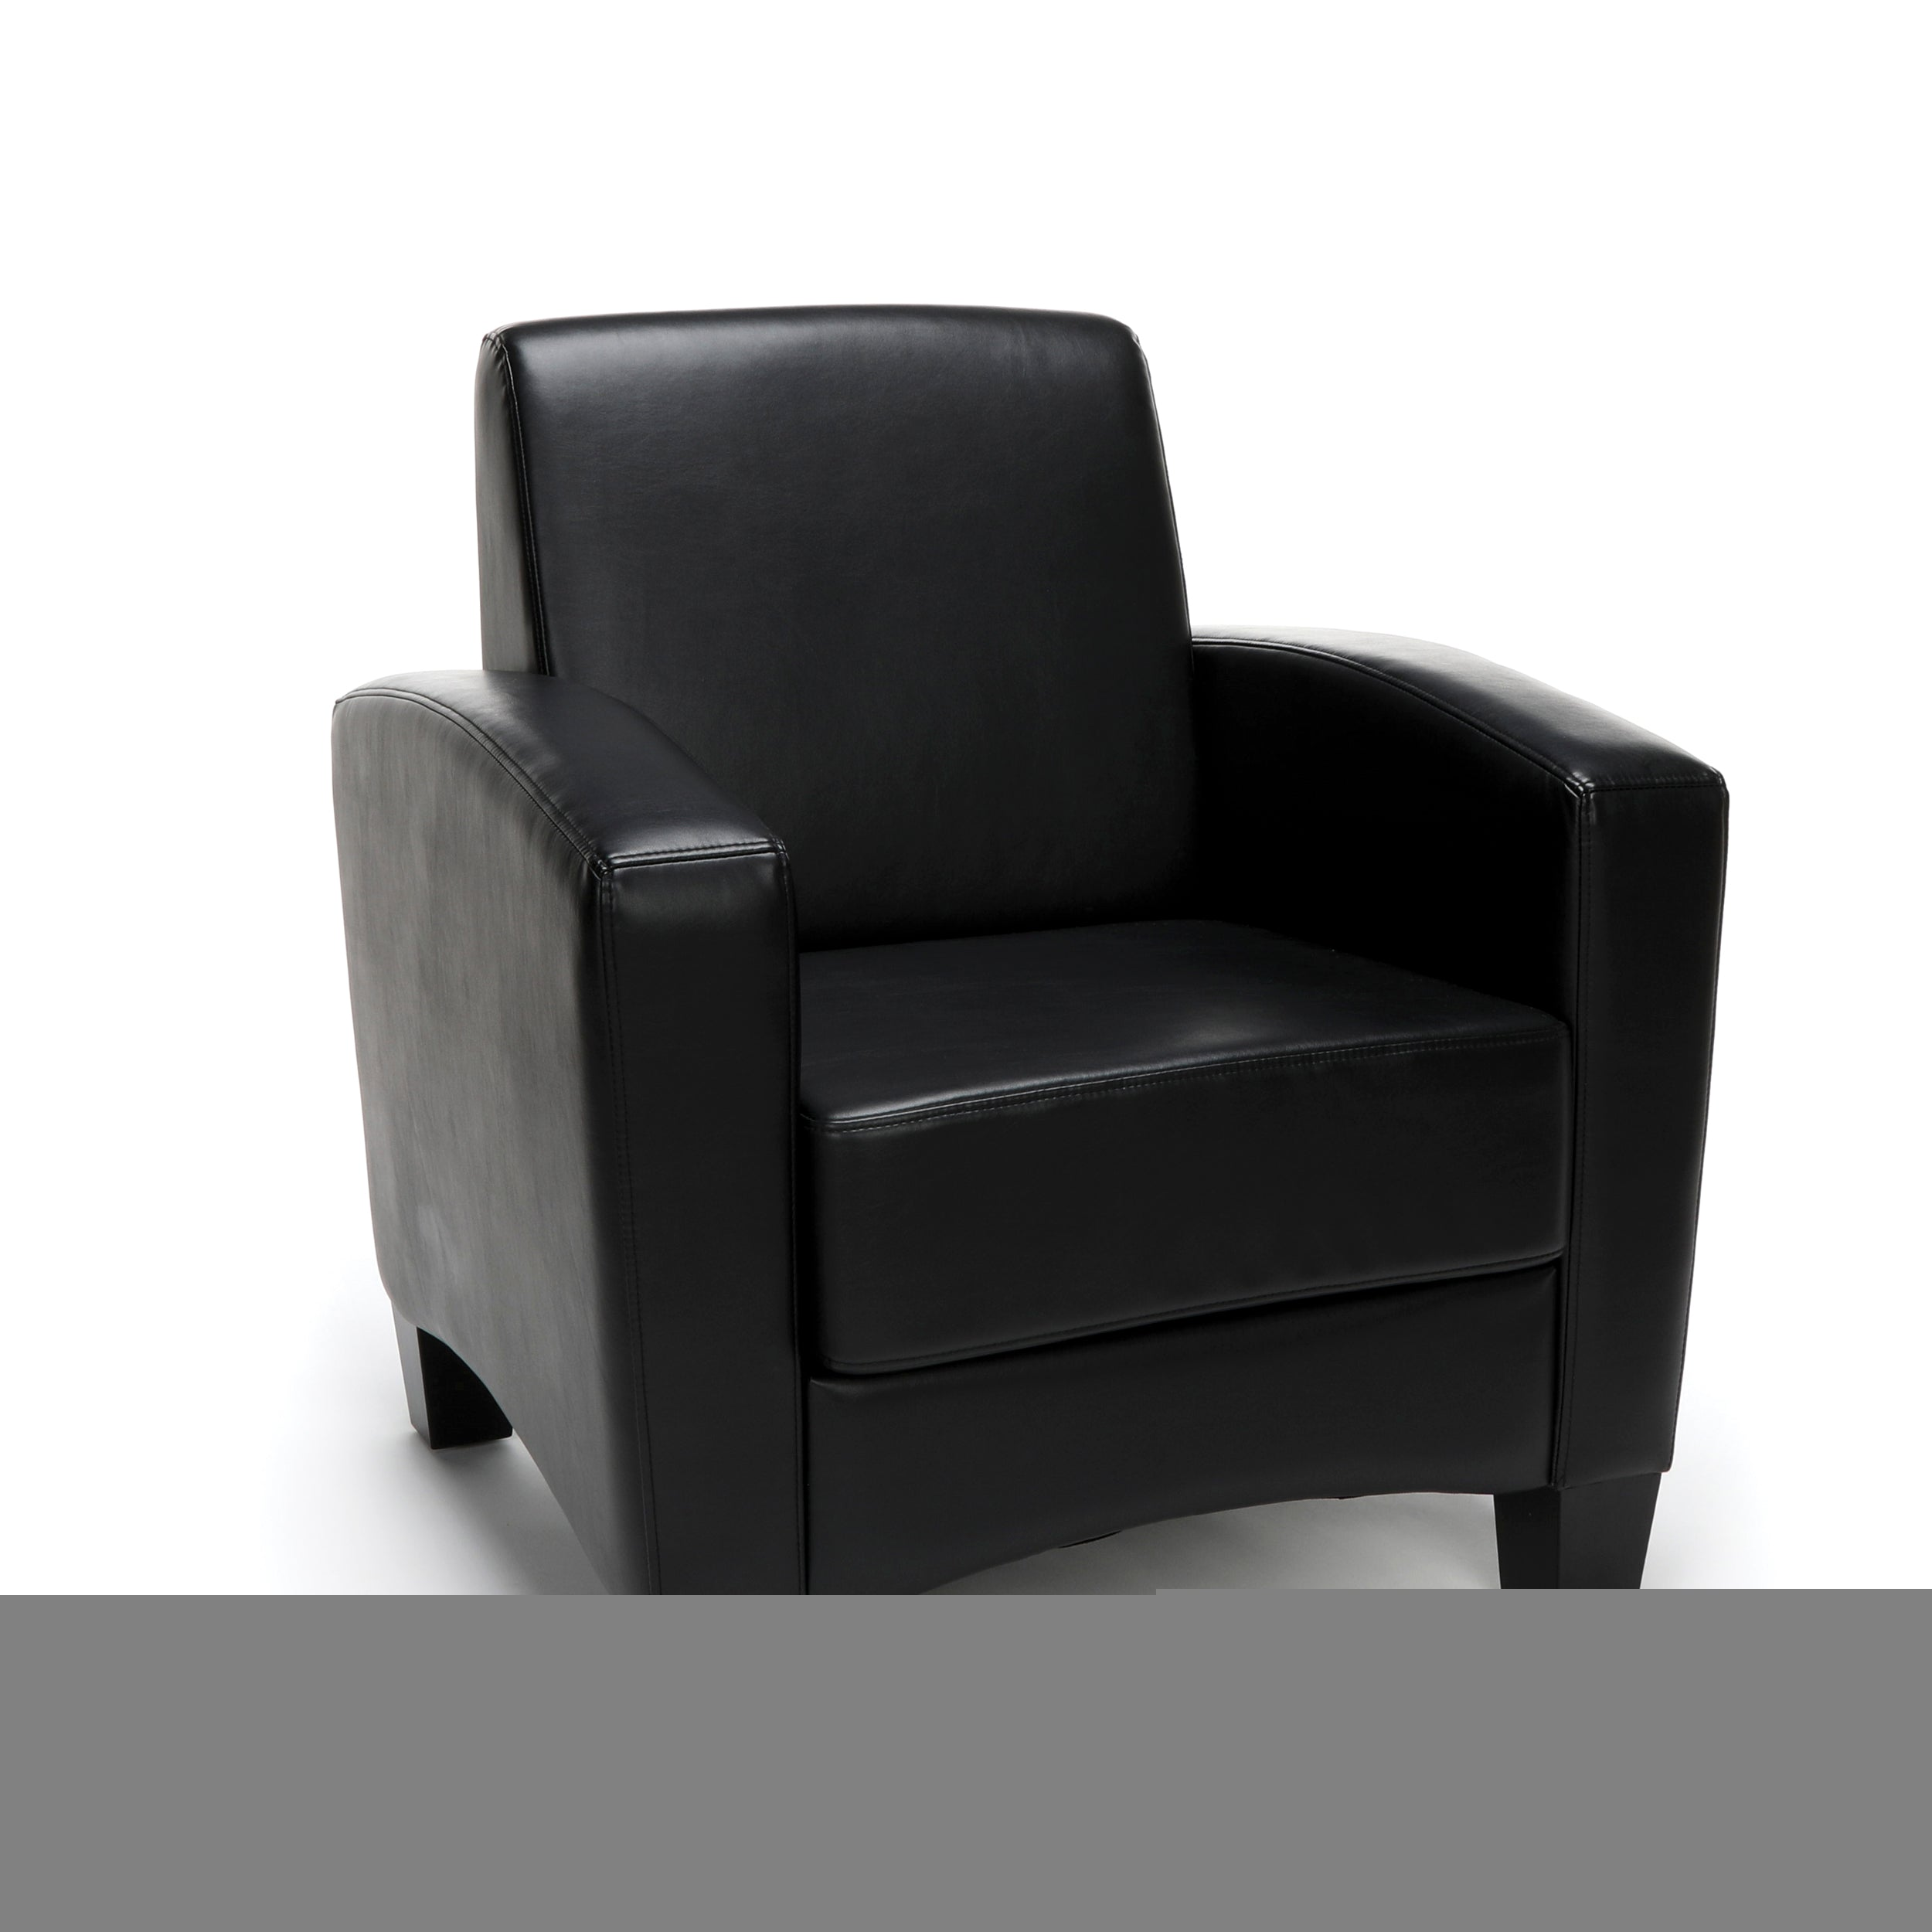 Model ESS-9050 Essentials By OFM Traditional Arm Chair